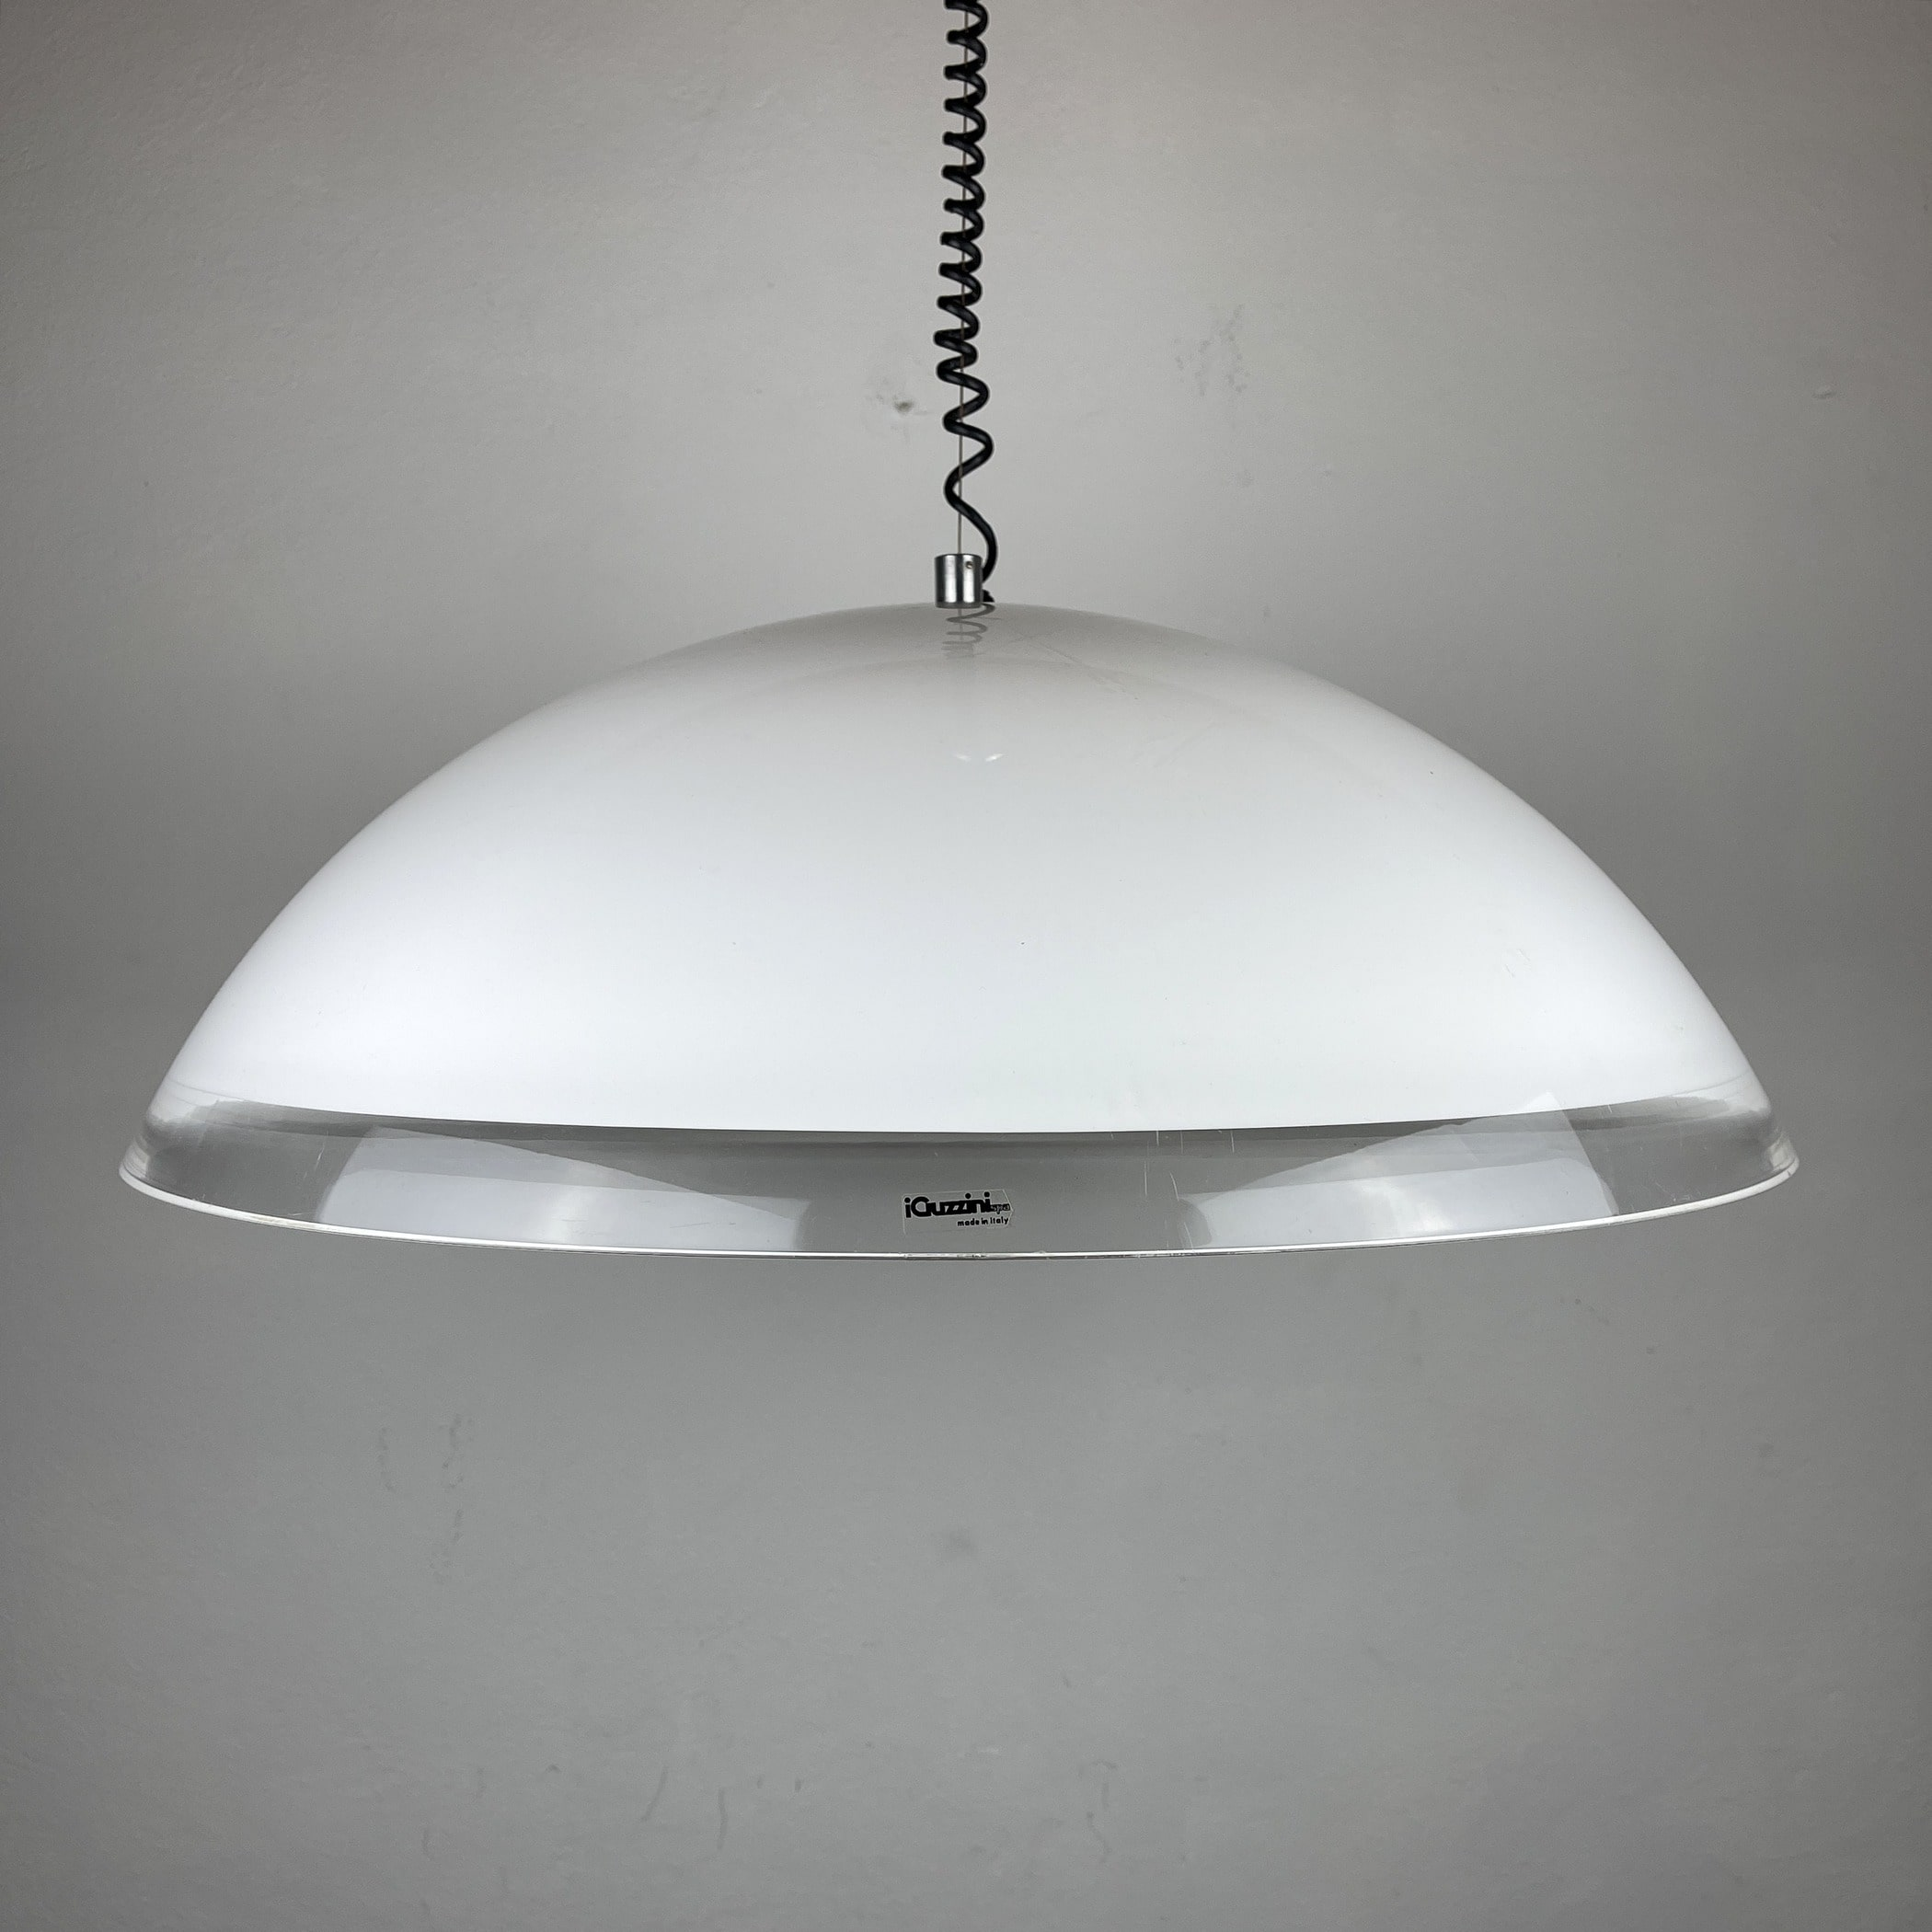 Mid-century XL white plastic pendant lamp by iGuzzini Italy 1980s Vintage Hanging Light Space Age Modern